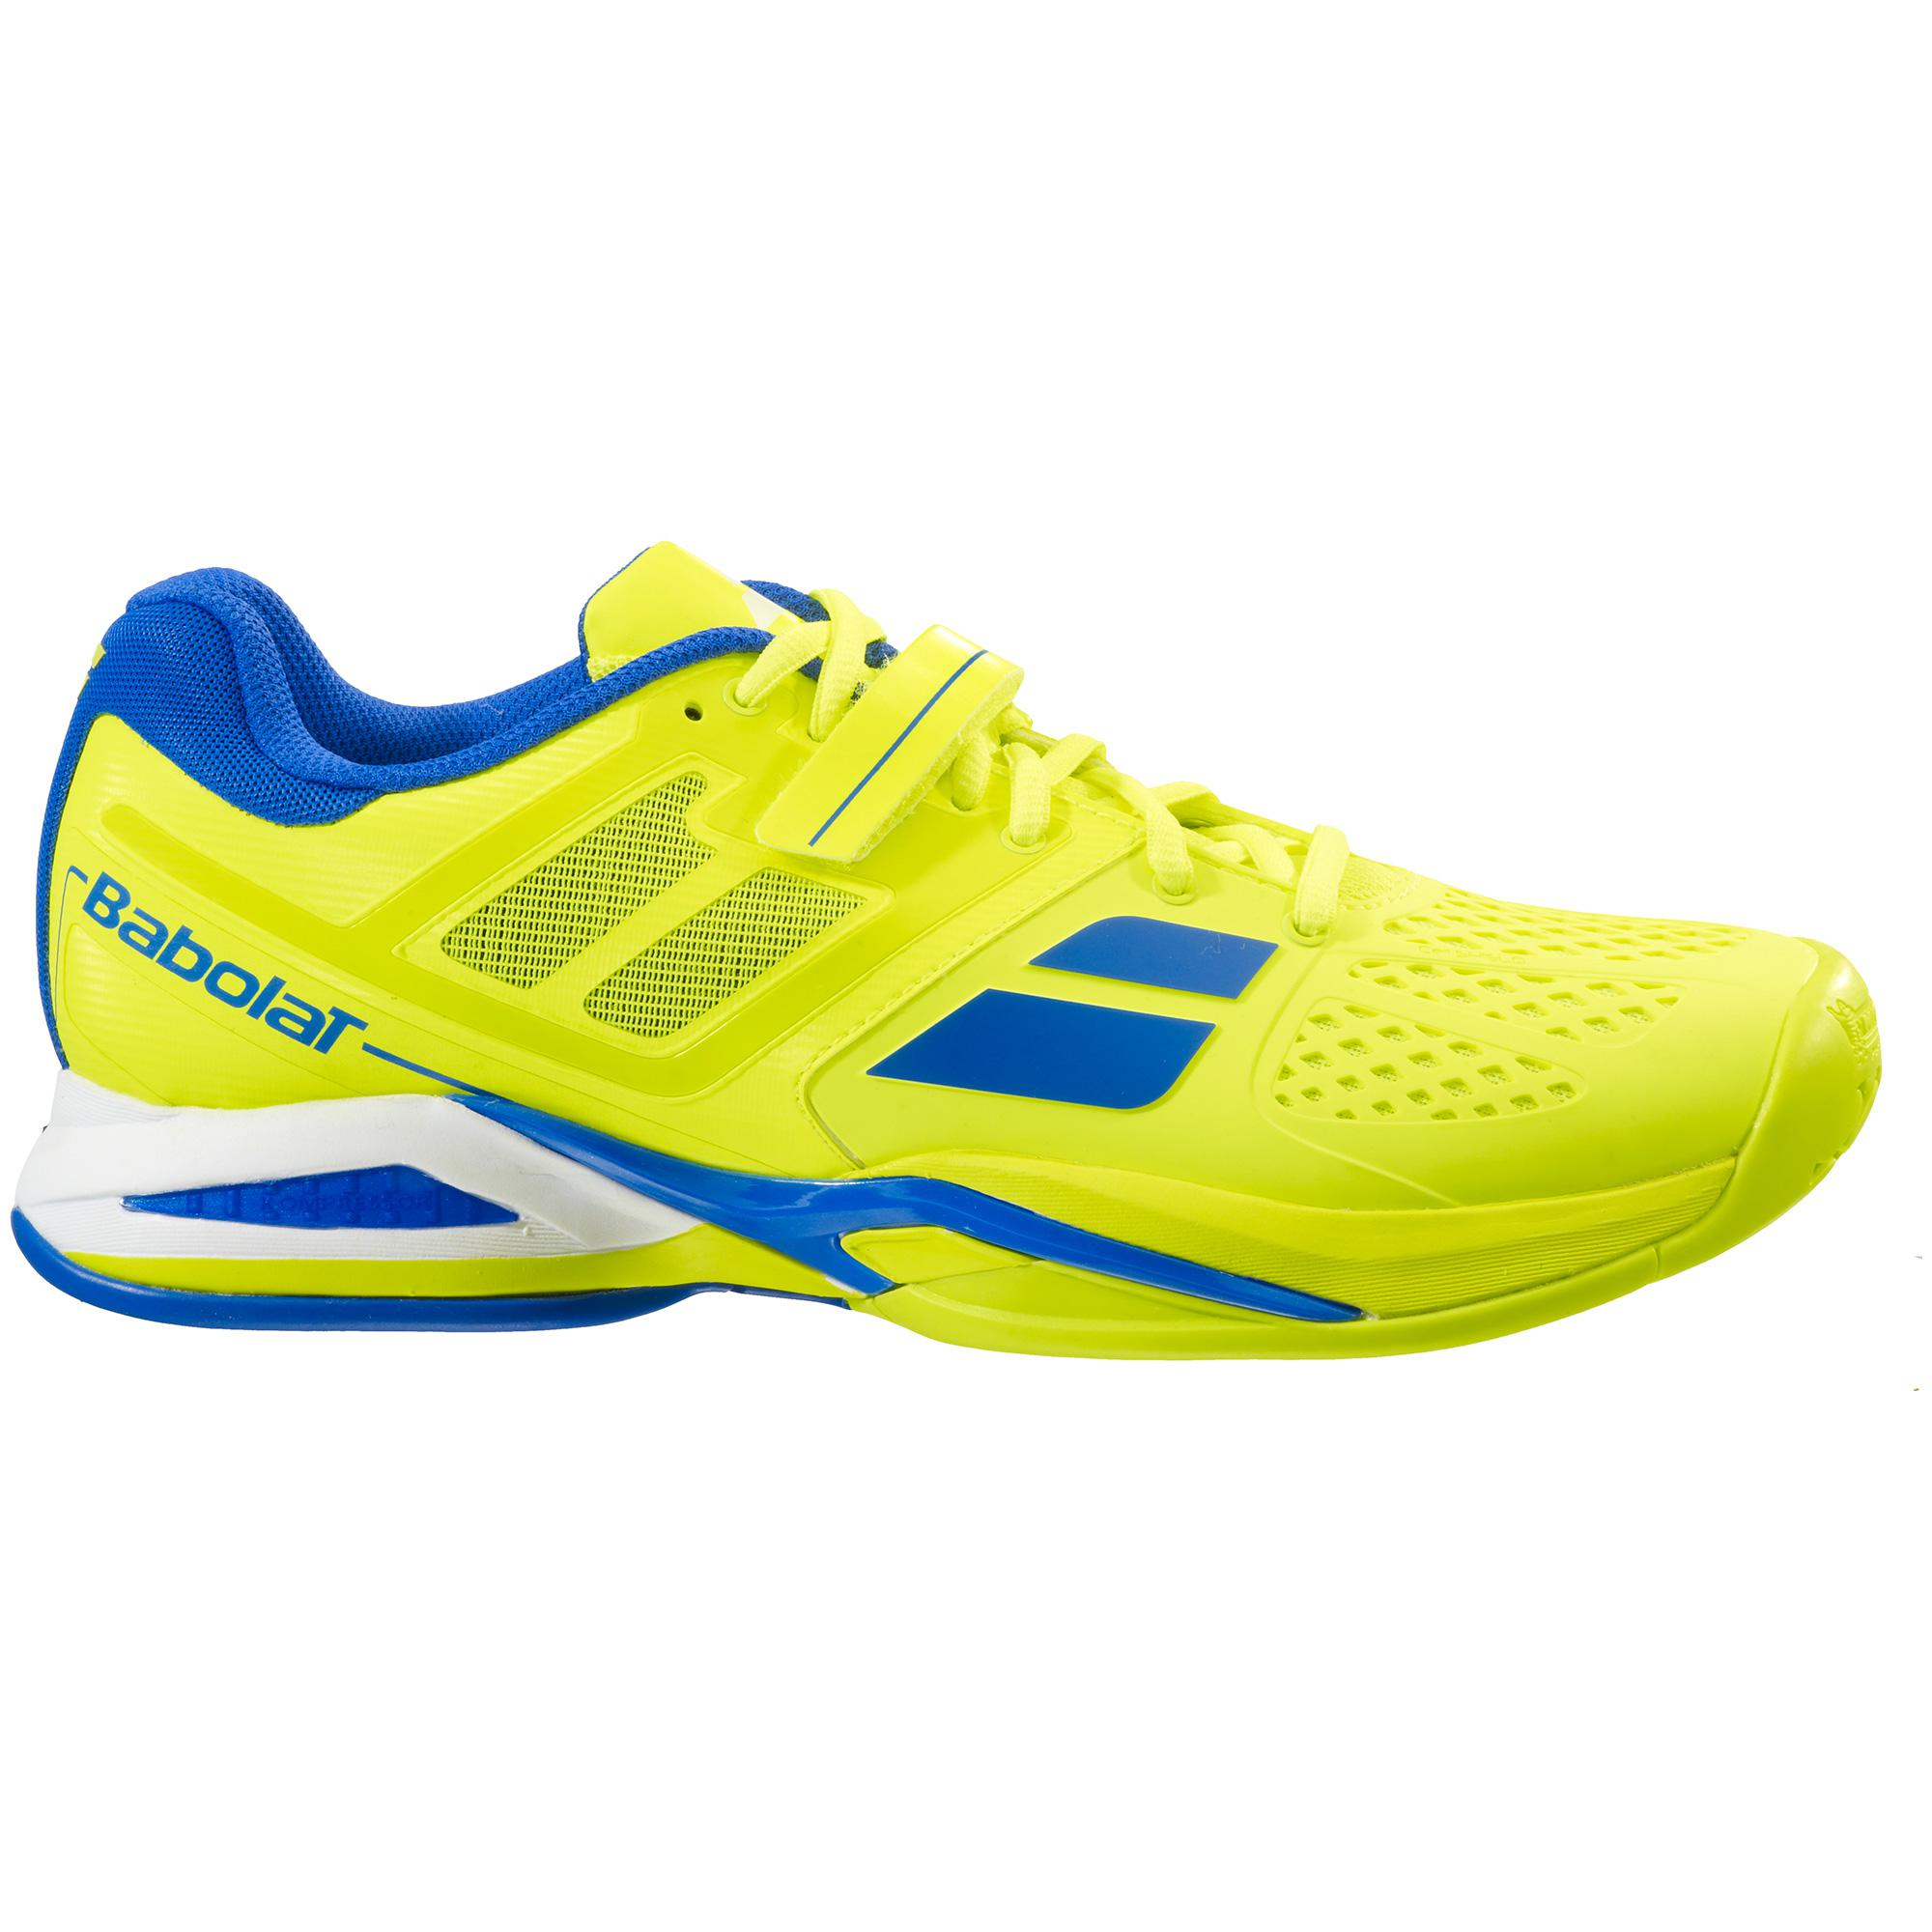 babolat propulse all court tennis shoes yellow blue